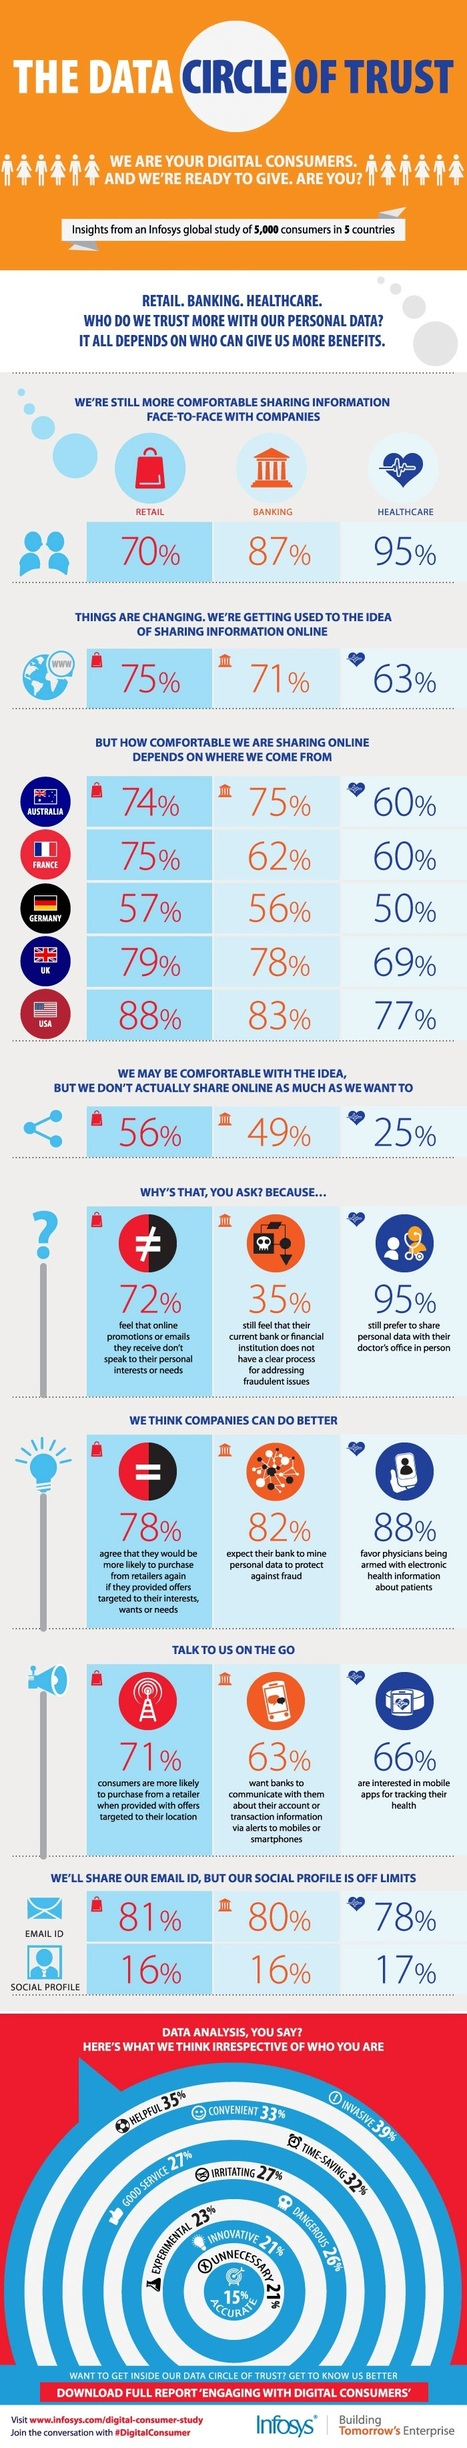 Who Do Digital Consumers Trust With Their Personal Data? [Infographic] | A World of Infos | Scoop.it